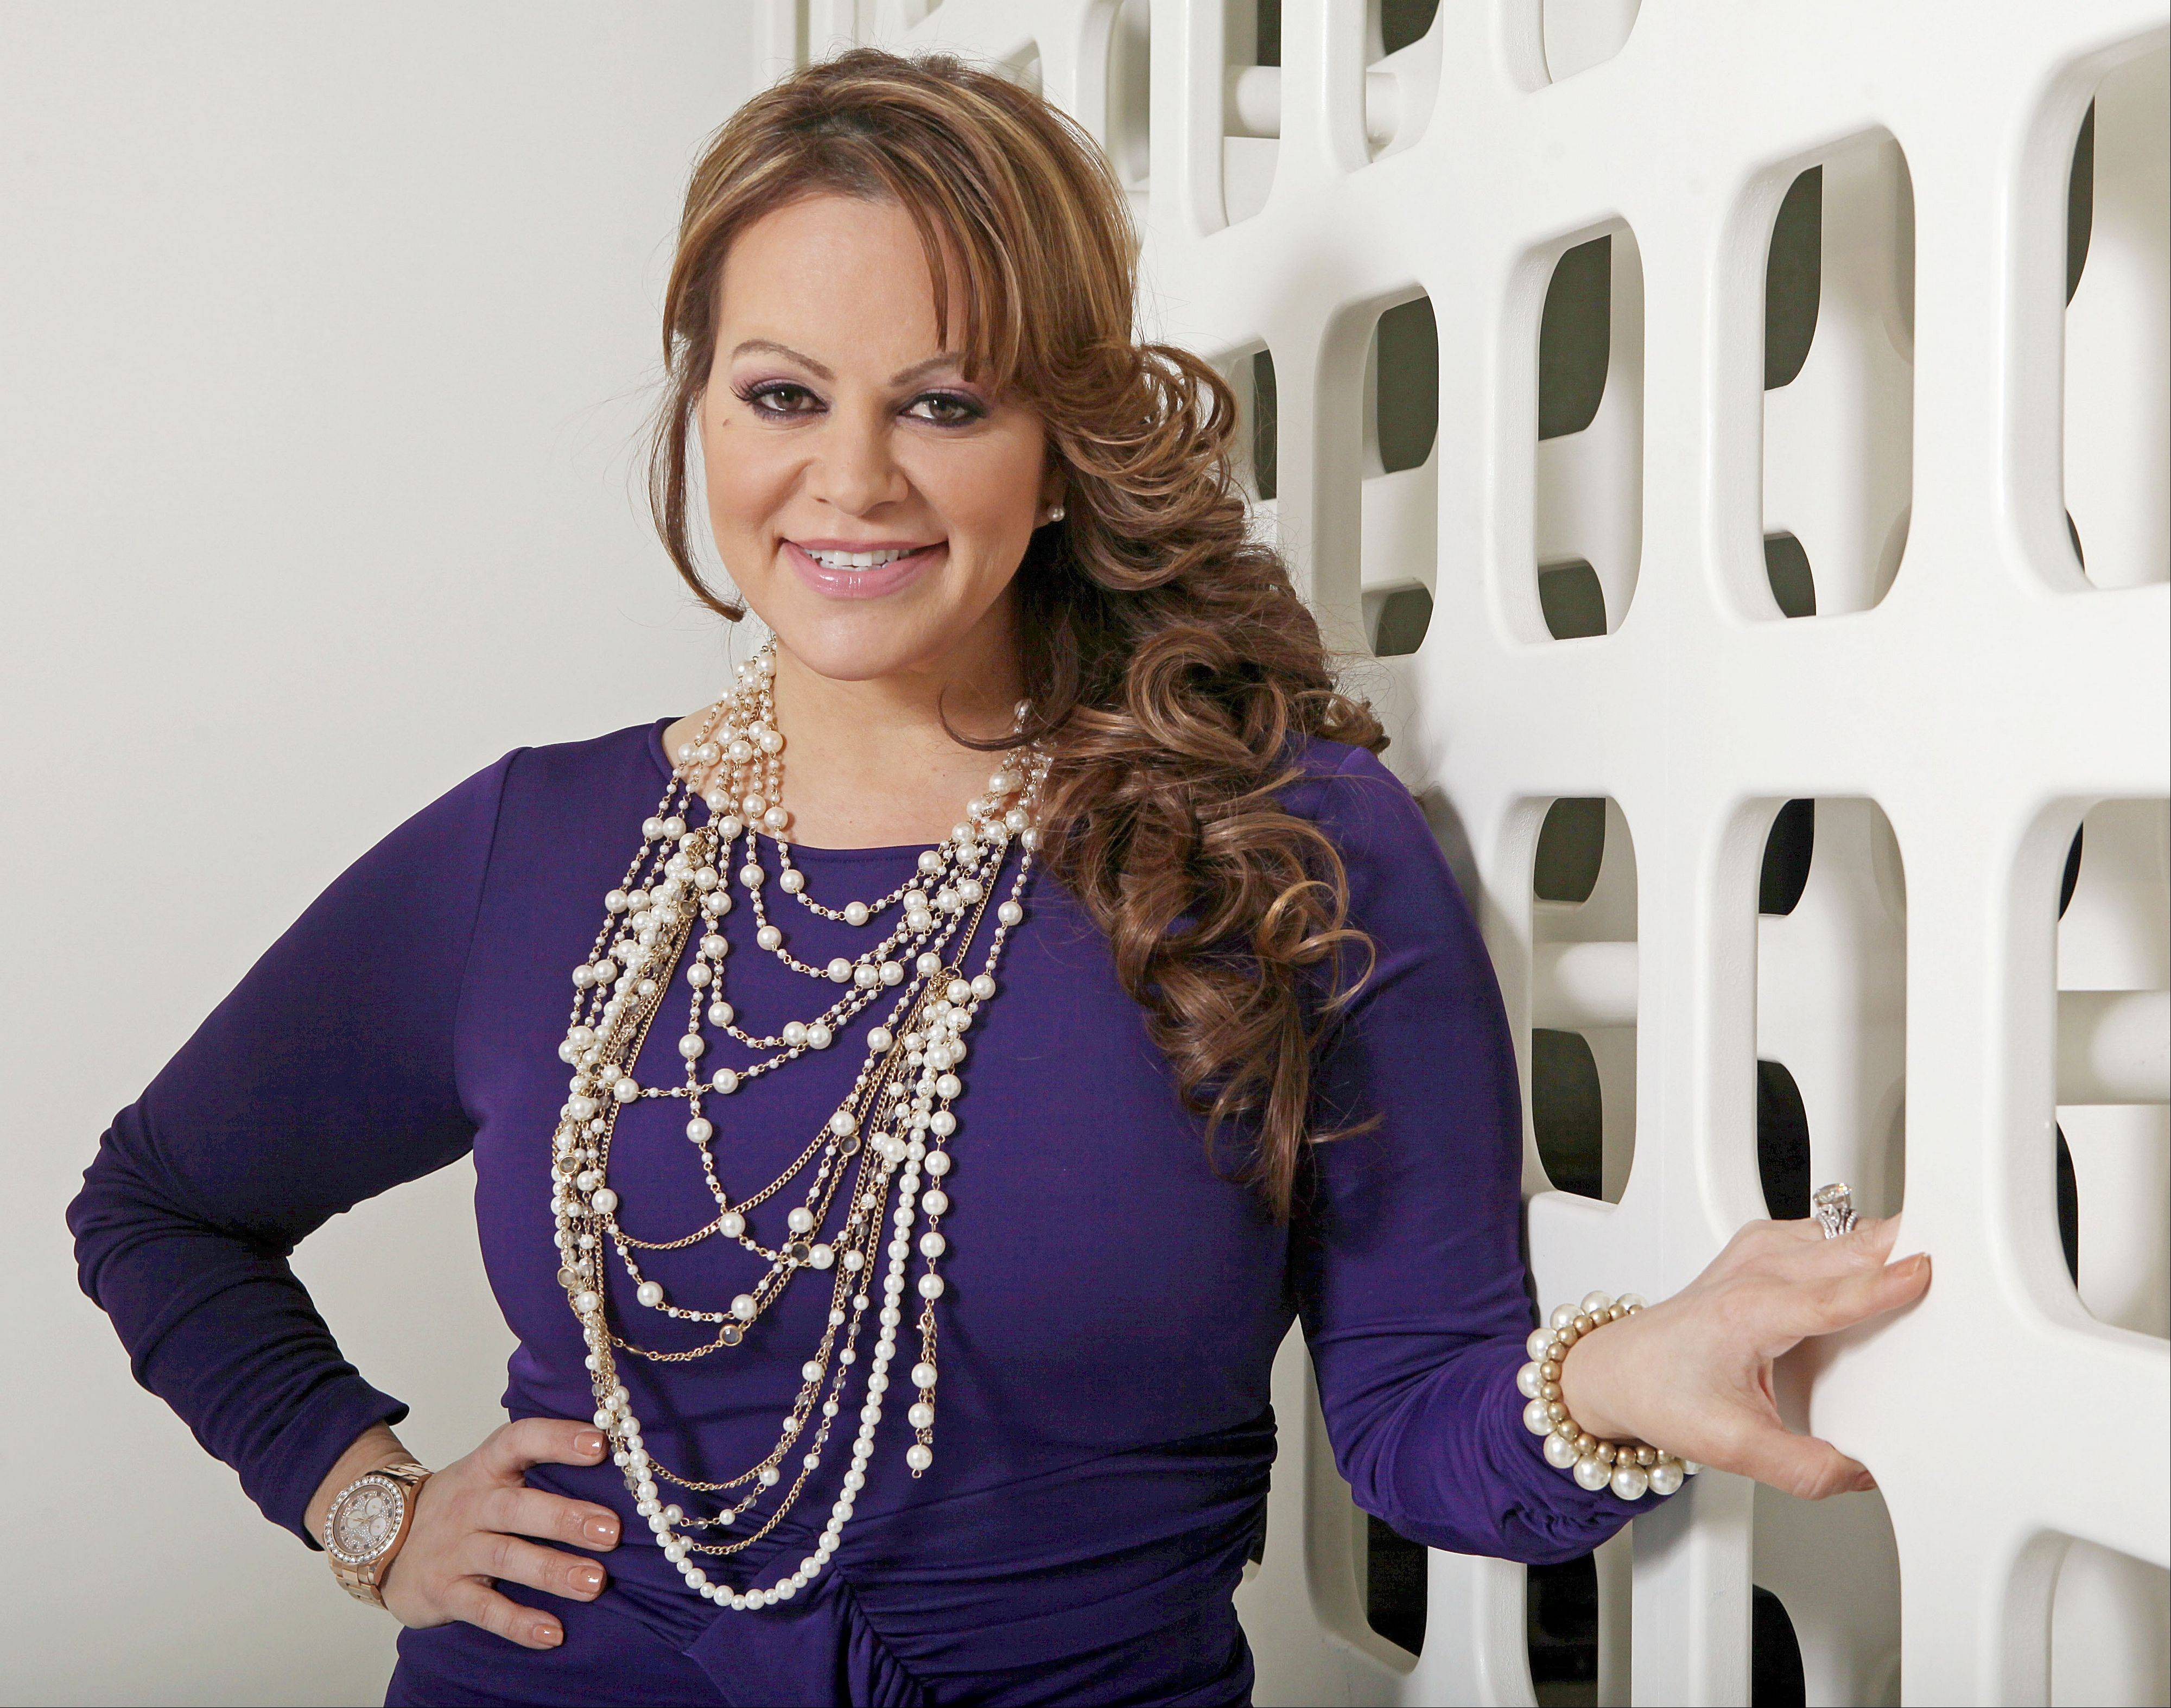 Jenni Rivera, the Mexican-American singer and reality TV star, died Dec. 9. She was 43.